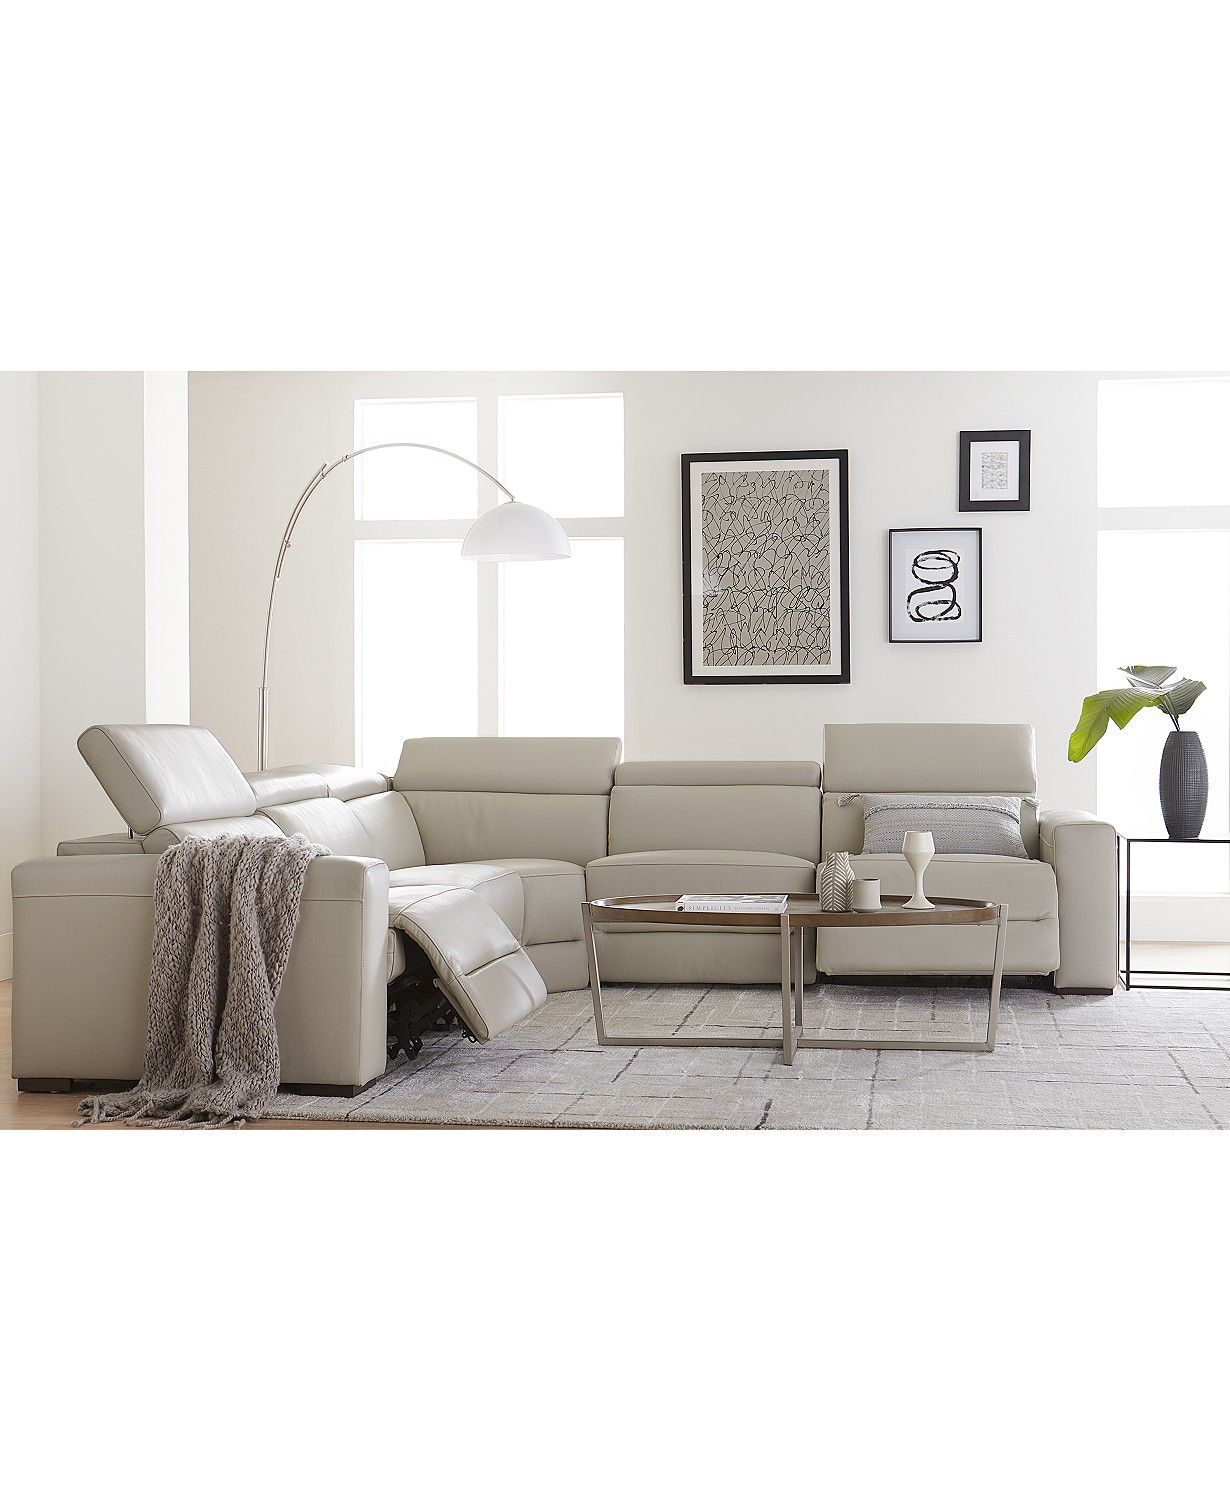 Furniture Nevio Leather Power Reclining Sectional Sofa With Articulating Headrests Collection Created For Macy S Reviews Furniture Macy S In 2020 Power Reclining Sectional Sofa Sectional Sofa With Recliner Reclining Sectional